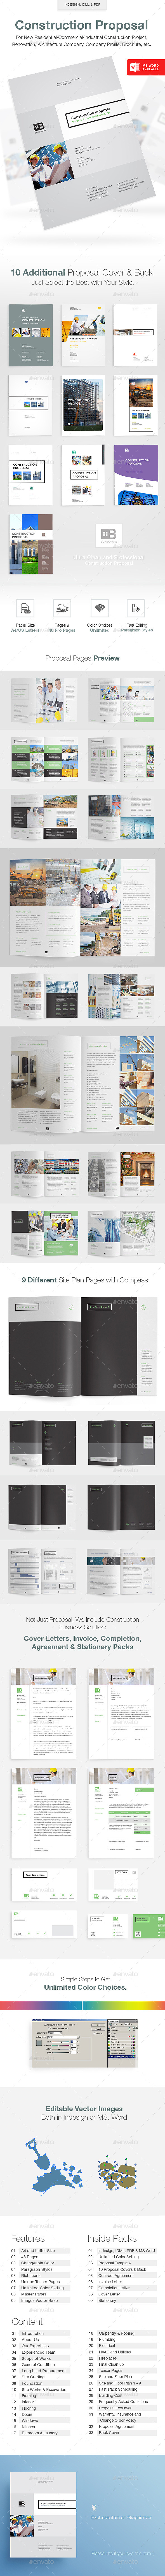 GraphicRiver Clean Construction Proposal 10196053